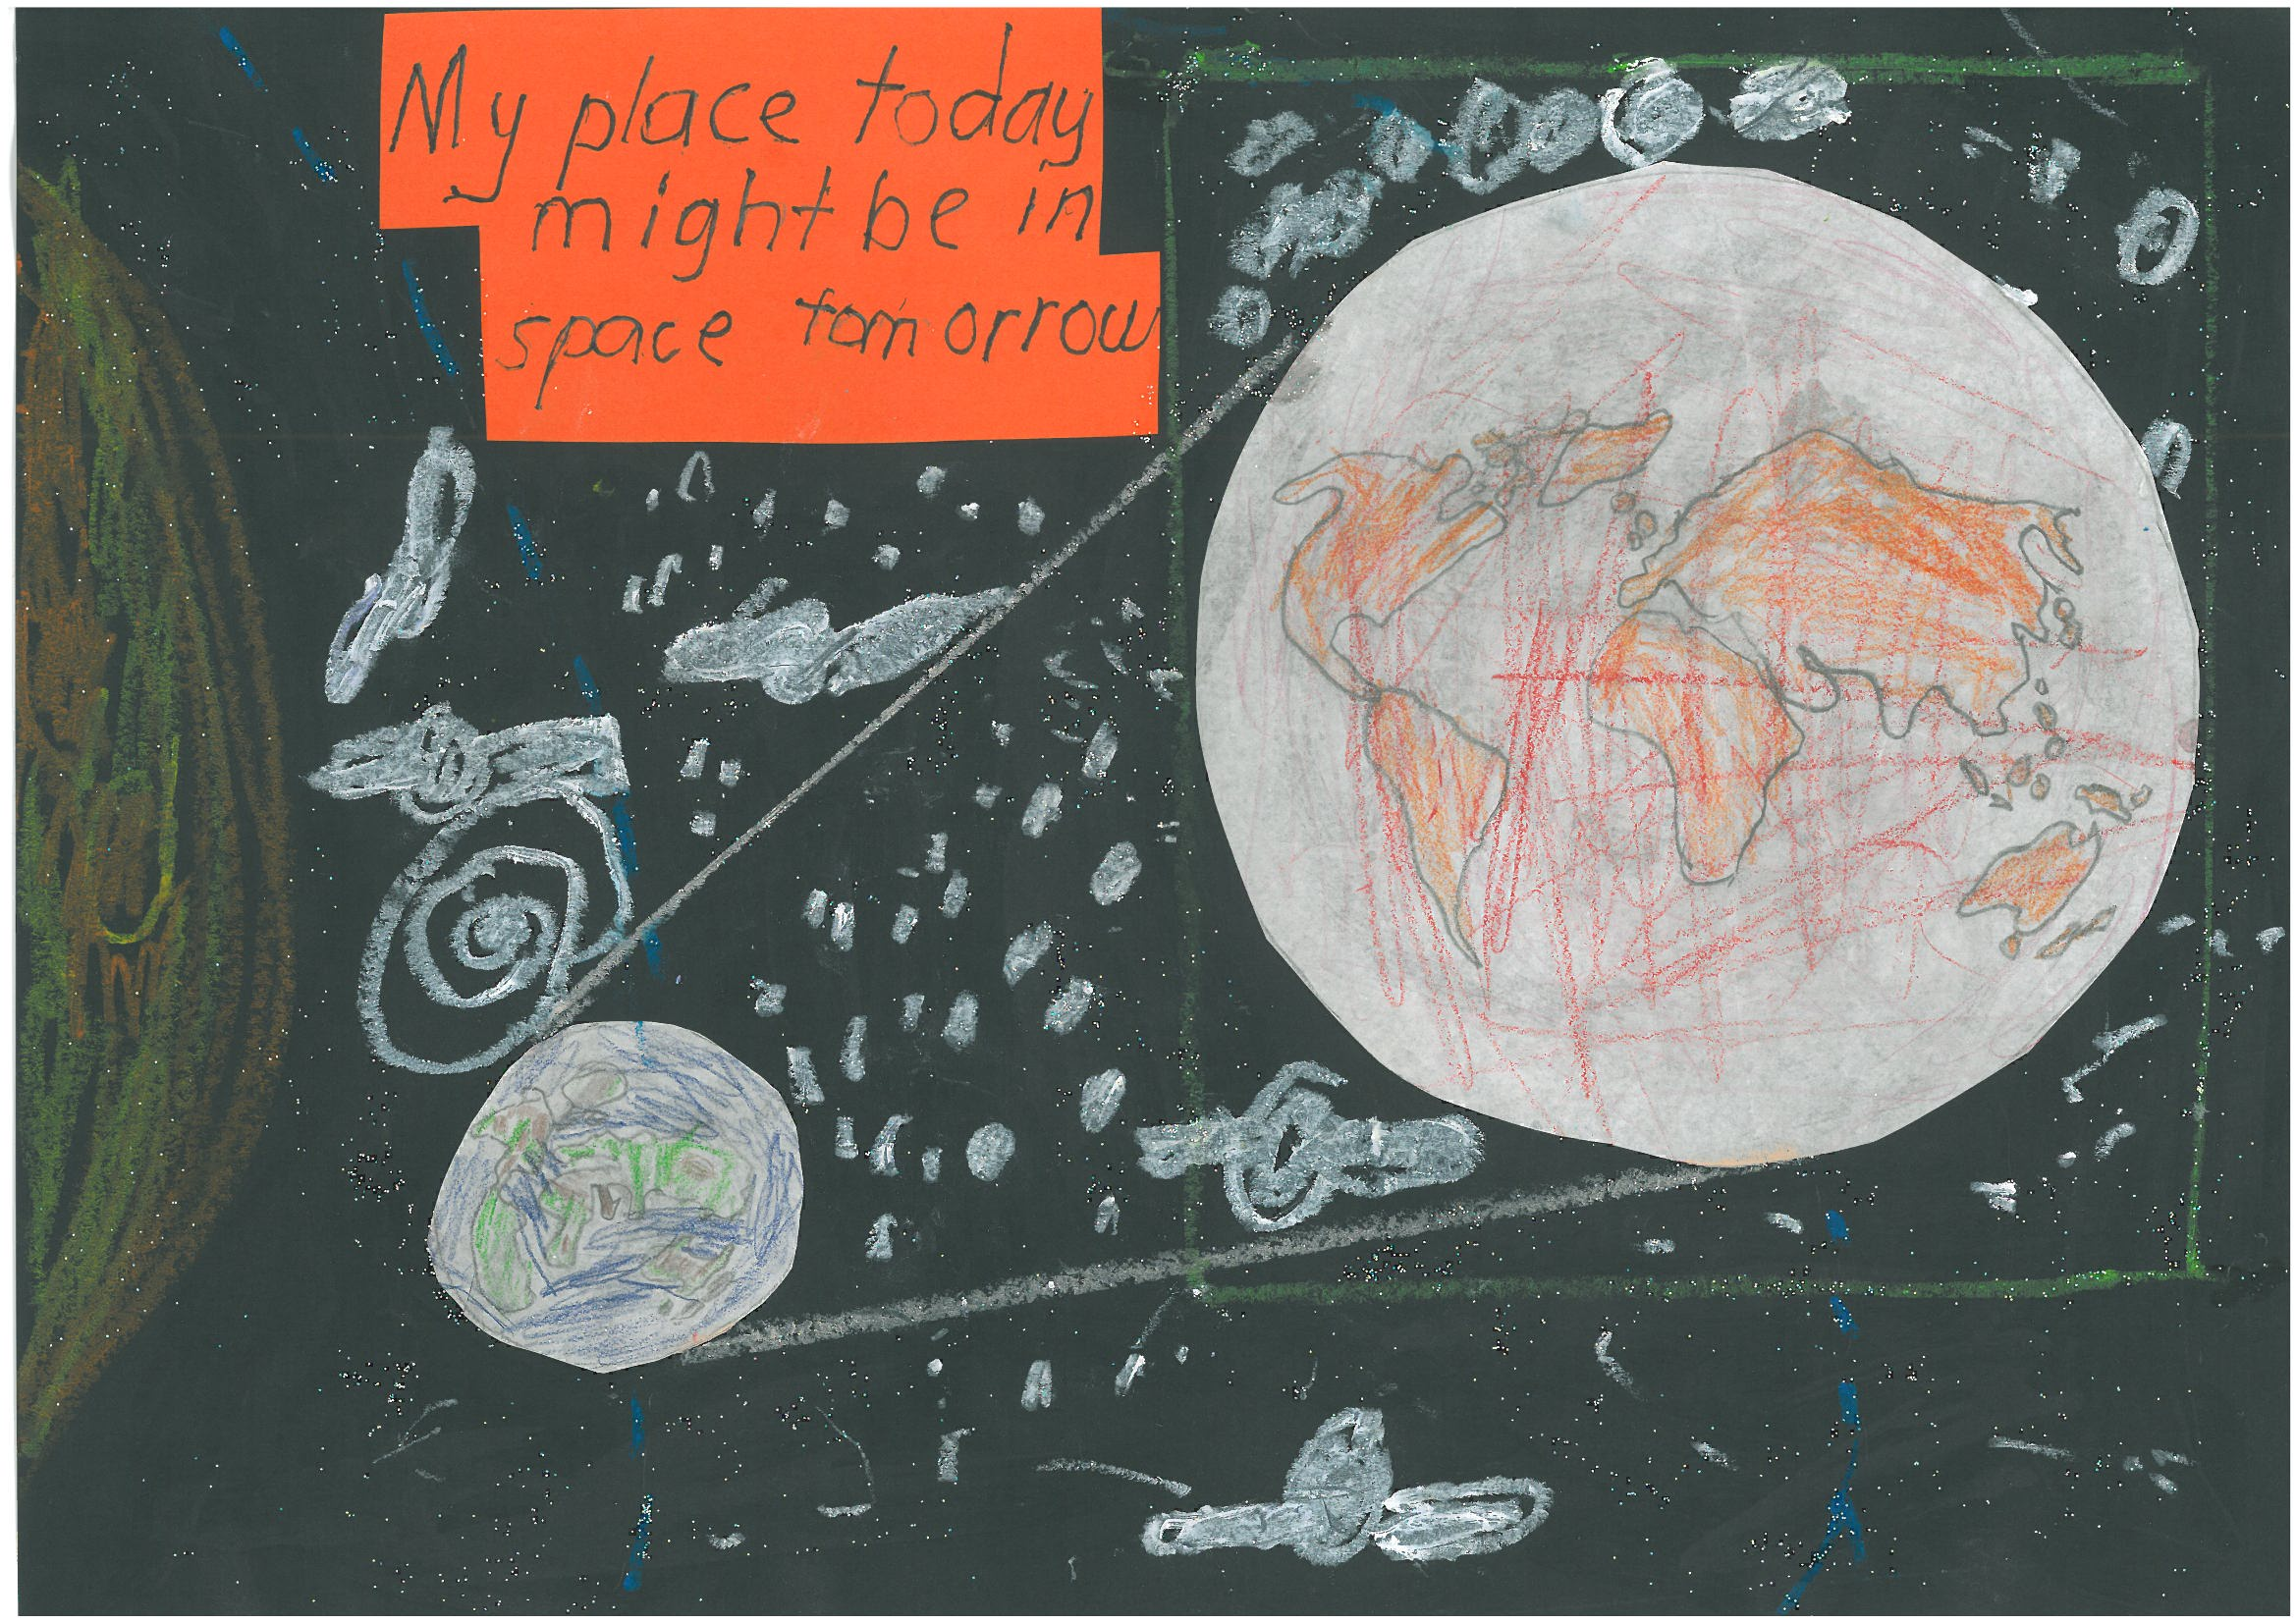 034 - My place today might be in space tomorrow Otto Pattemore - Age 6